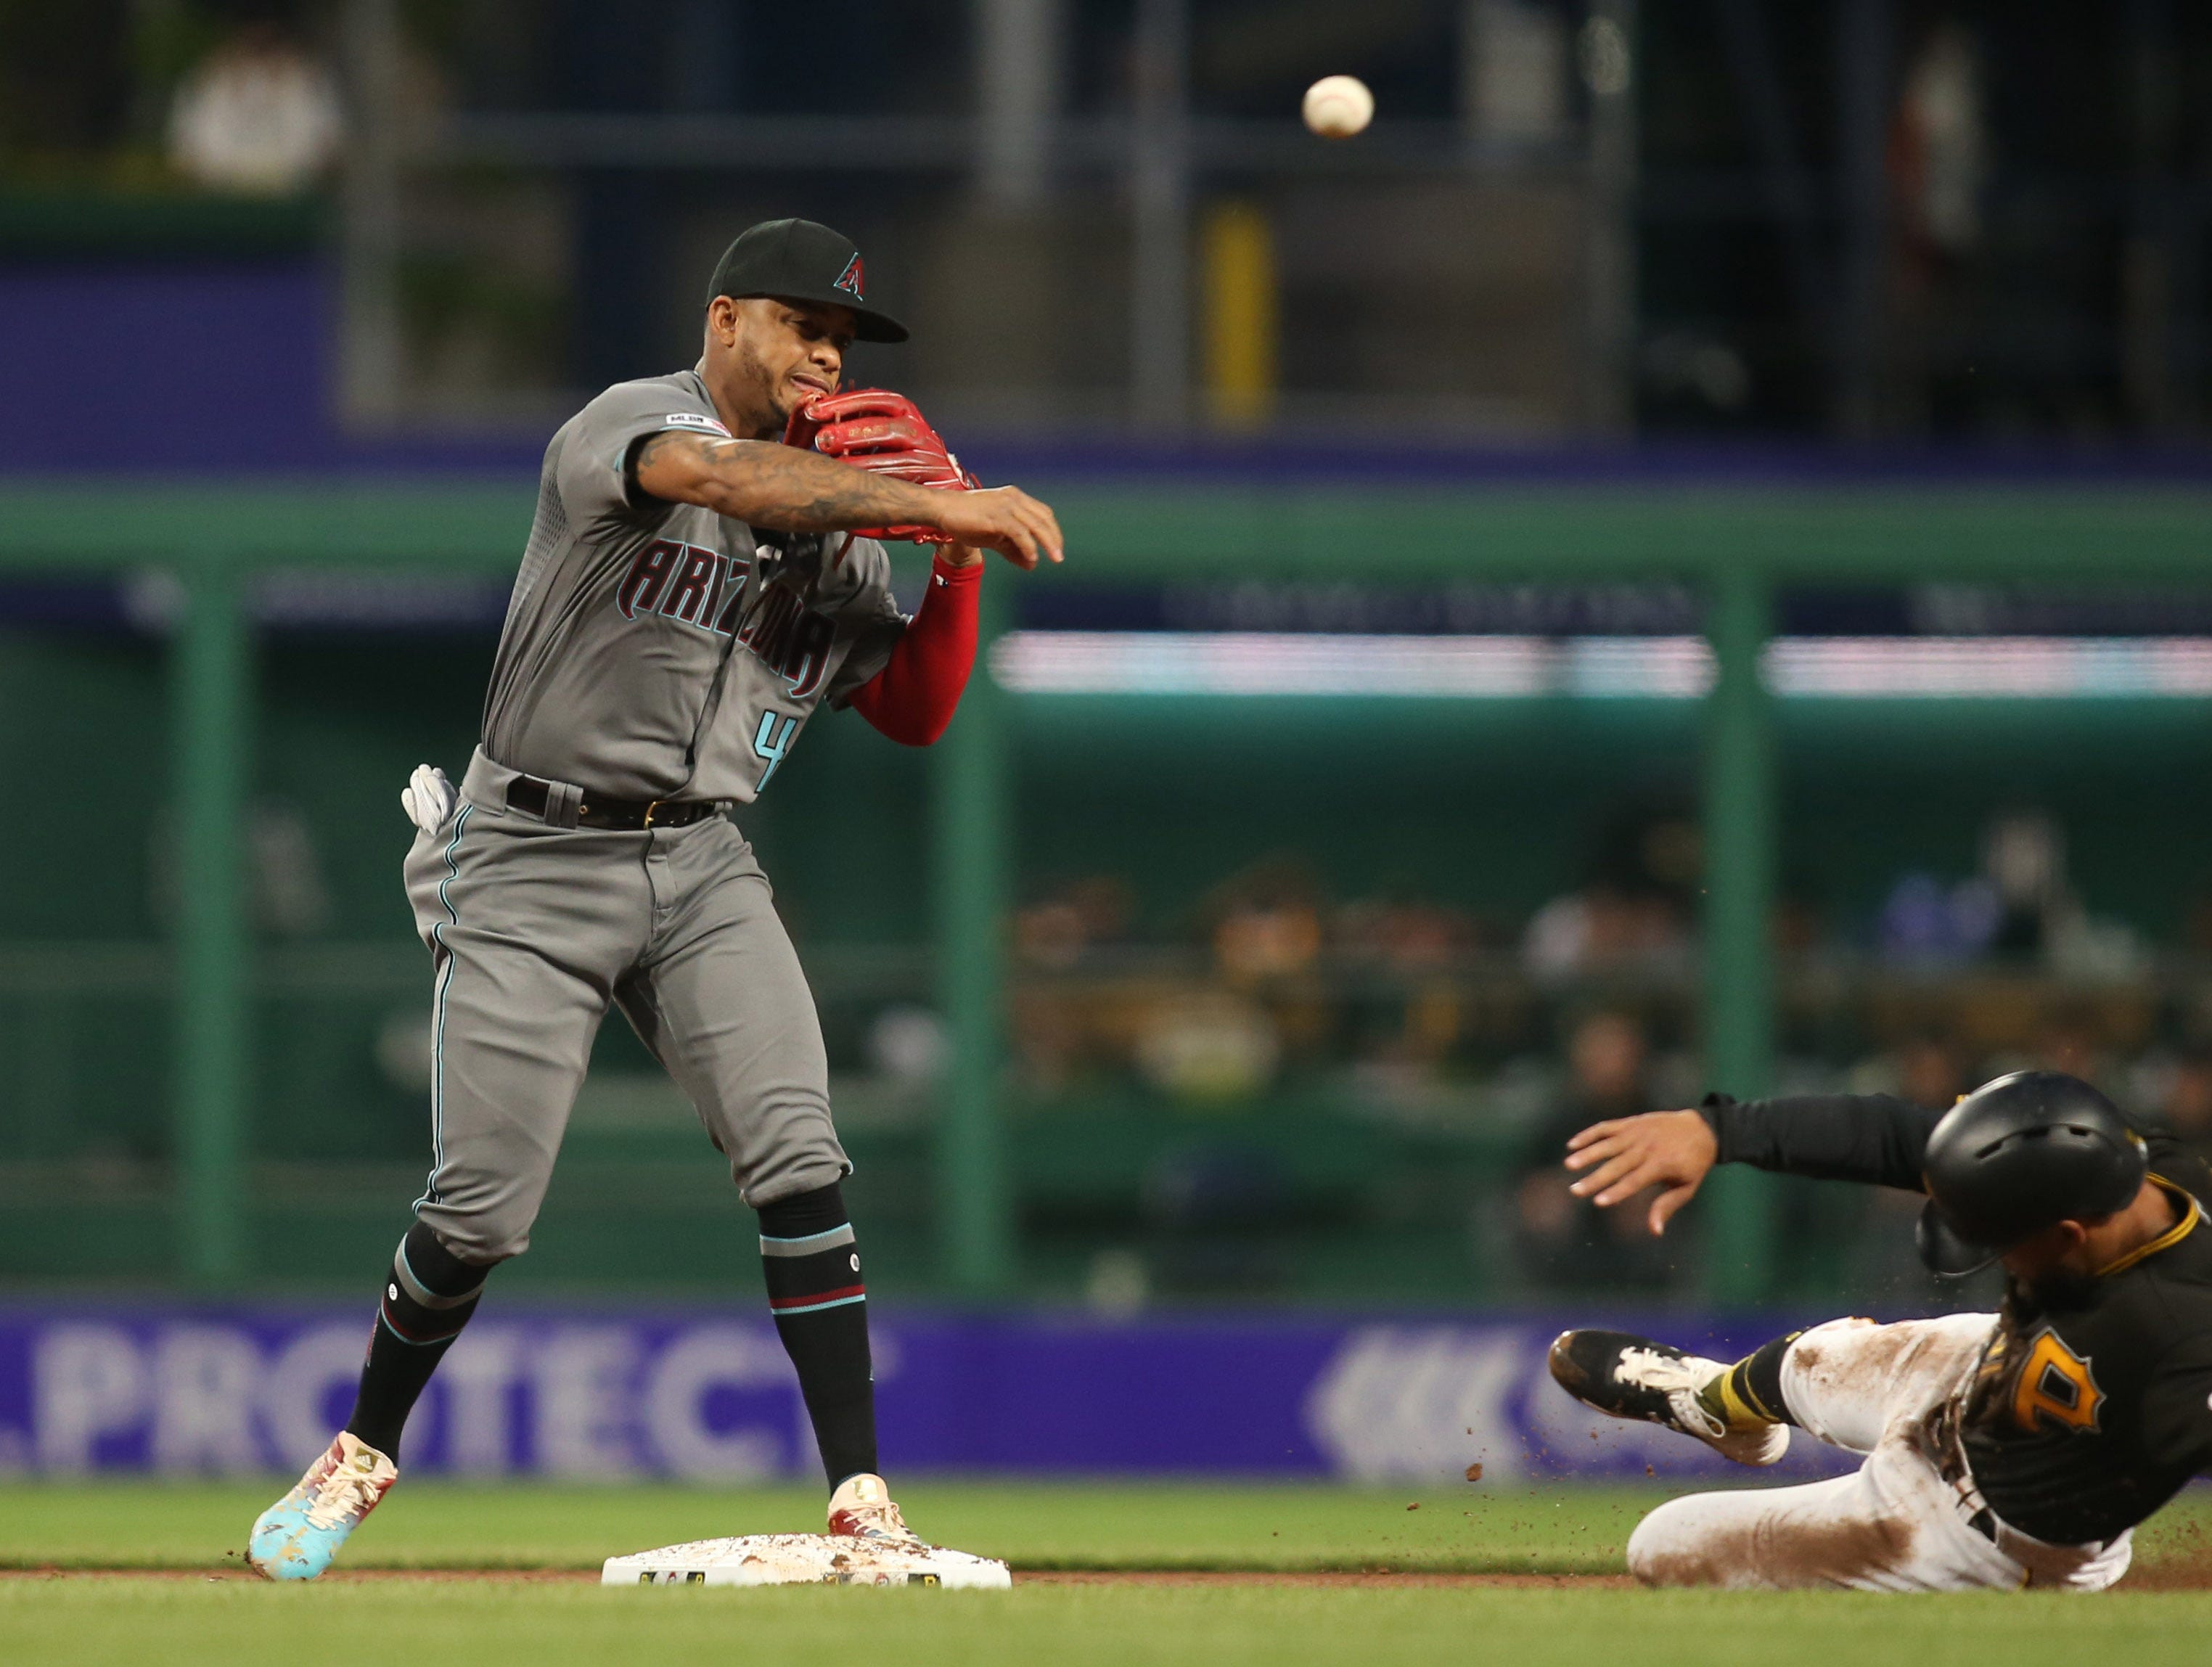 Apr 23, 2019; Pittsburgh, PA, USA;  Arizona Diamondbacks second baseman Ketel Marte (4) turns a double play over Pittsburgh Pirates center fielder Jason Martin (51) during the fourth inning at PNC Park. Mandatory Credit: Charles LeClaire-USA TODAY Sports